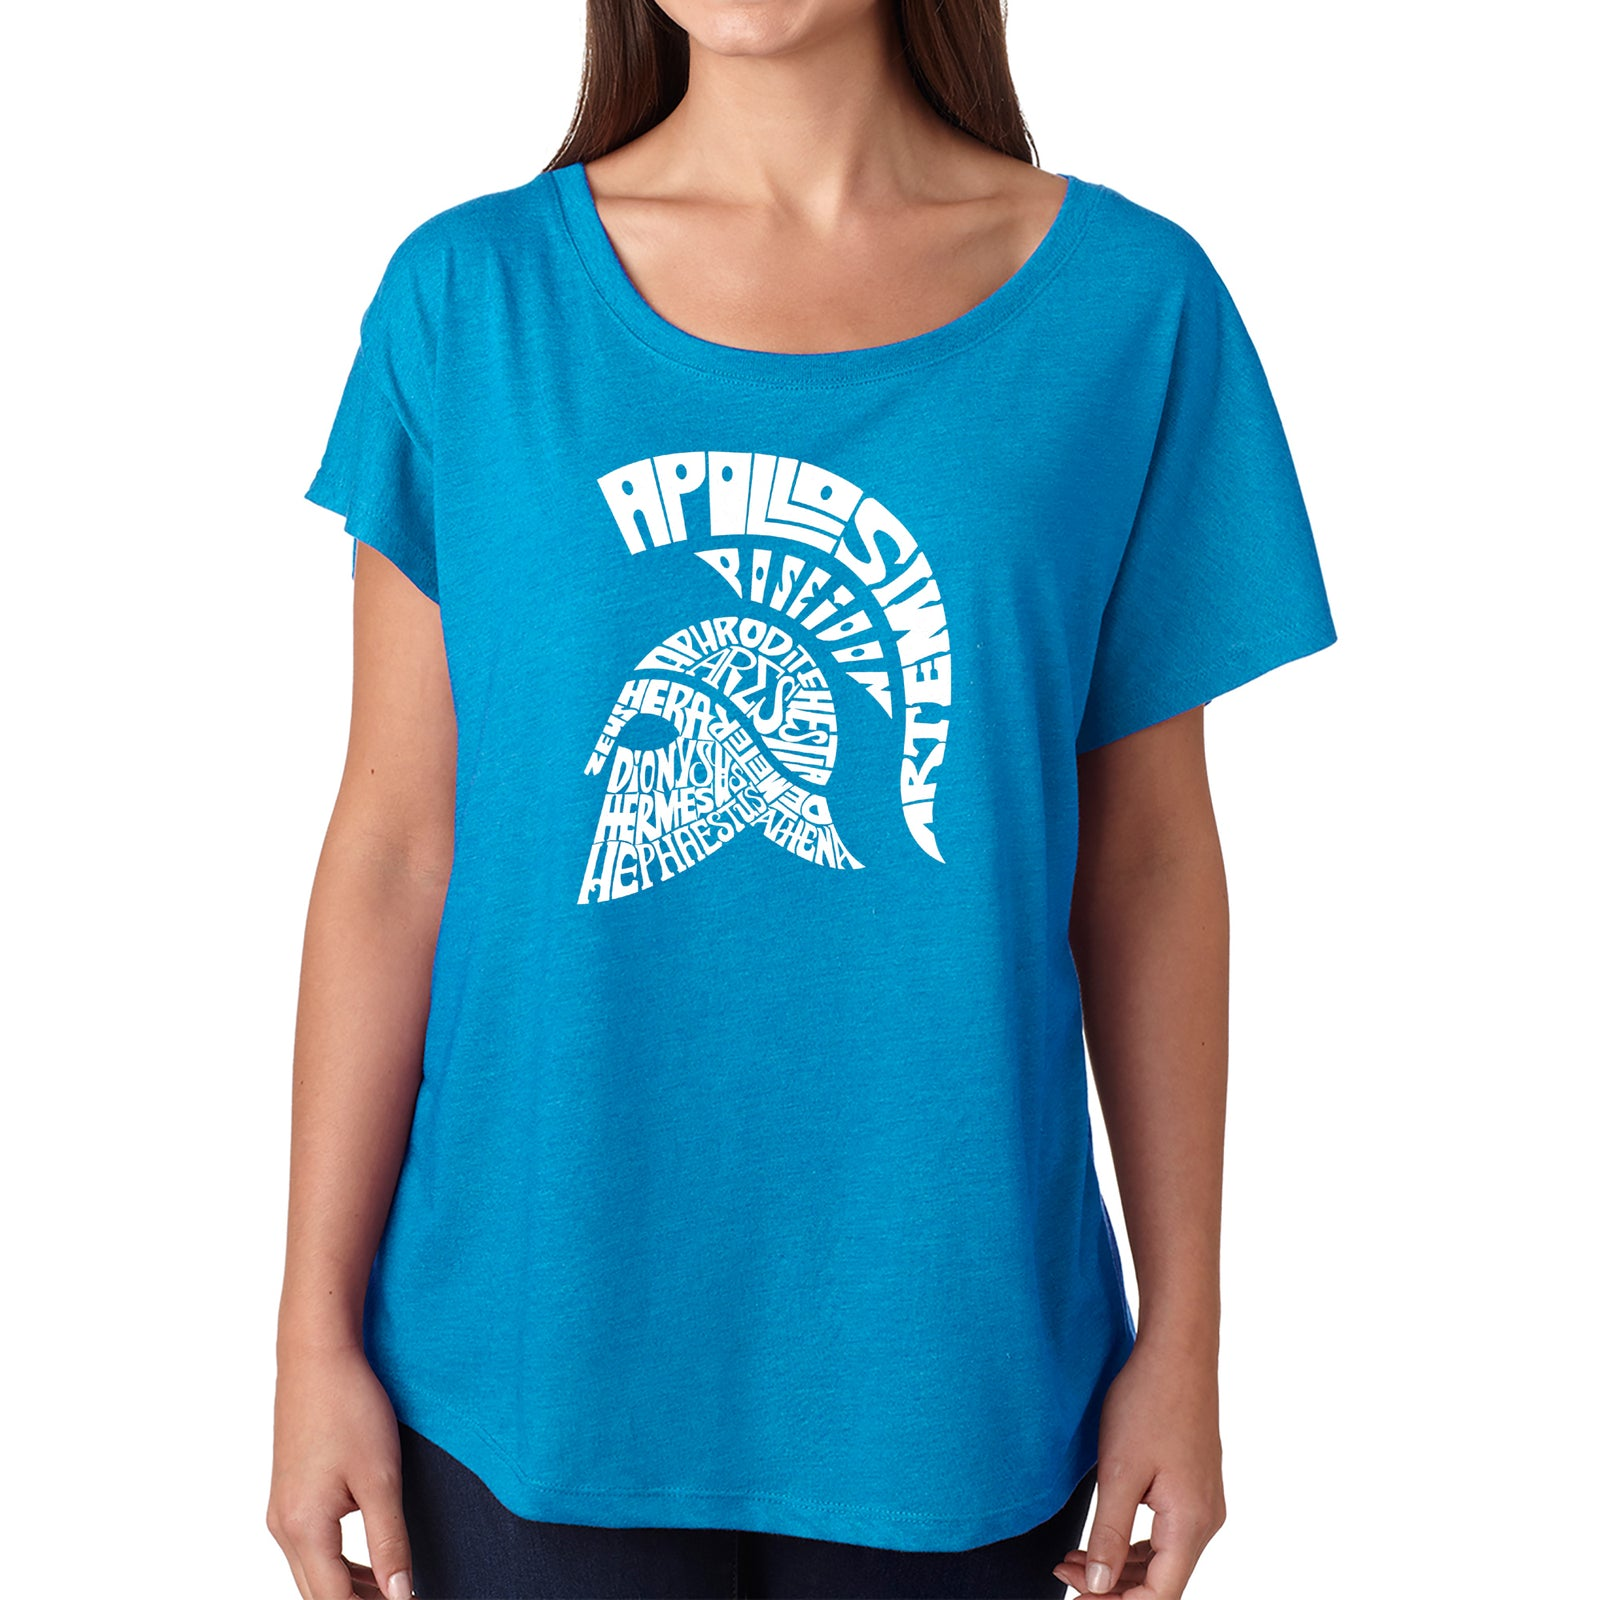 Women's Loose Fit Dolman Cut Word Art Shirt - SPARTAN